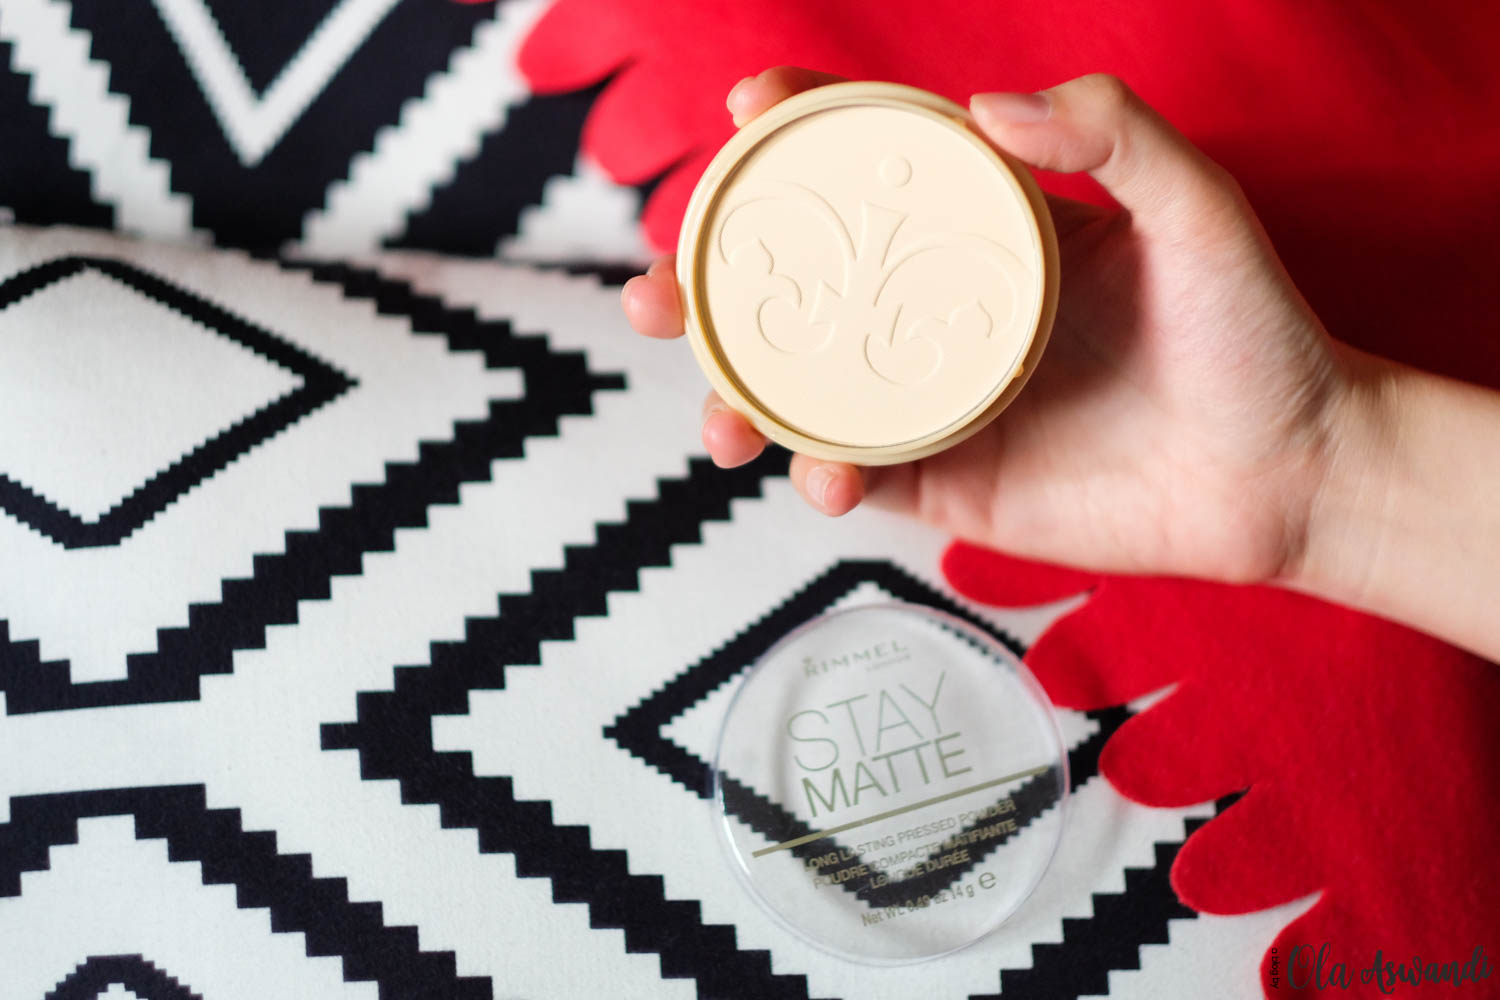 Rimmel-Lightroom-25 Review: Rimmel Stay Matte Pressed Powder